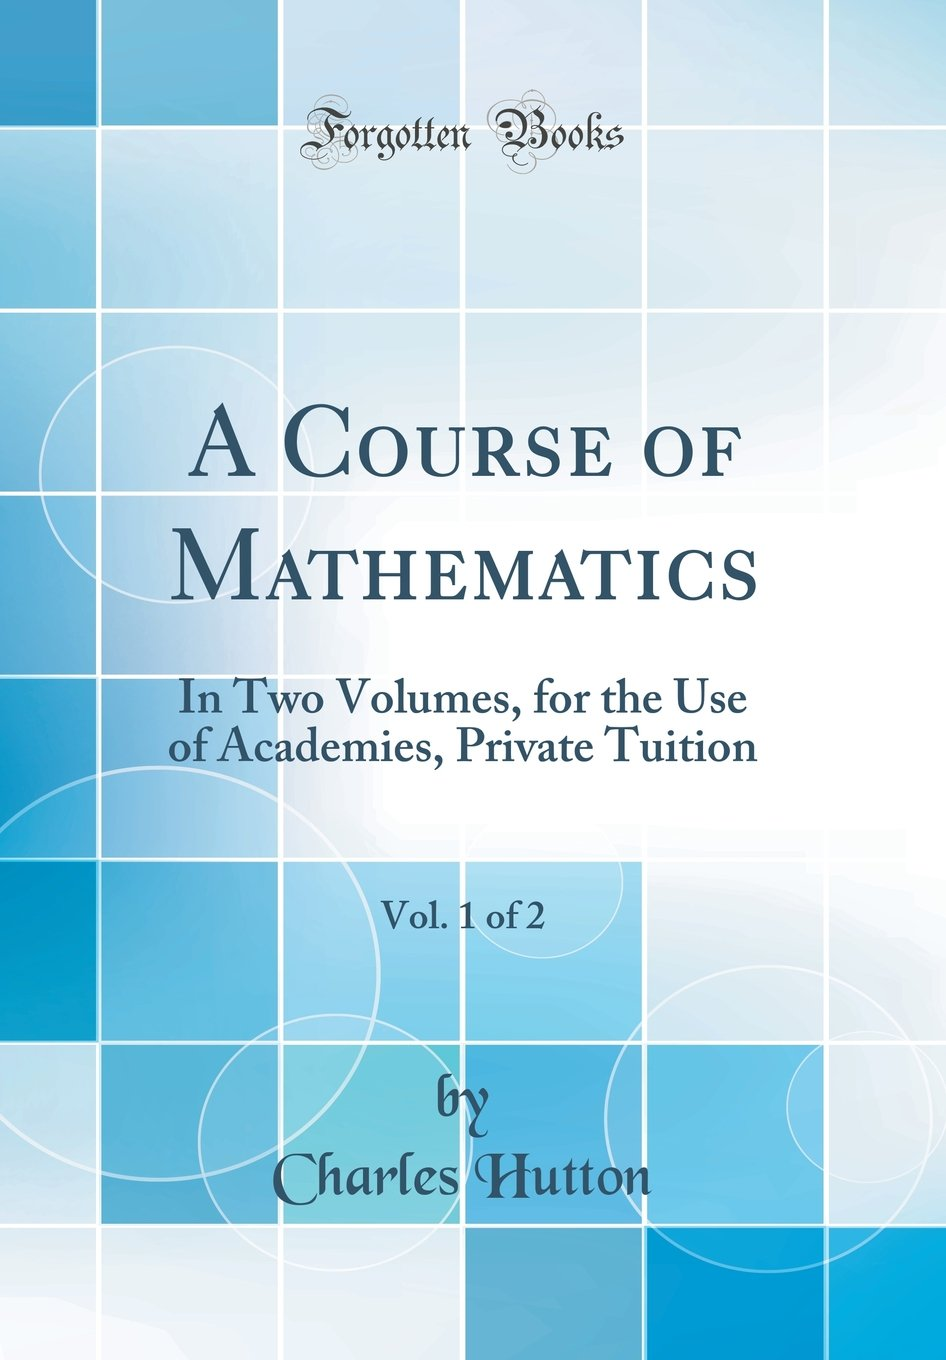 A Course of Mathematics, Vol. 1 of 2: In Two Volumes, for the Use of Academies, Private Tuition (Classic Reprint) PDF